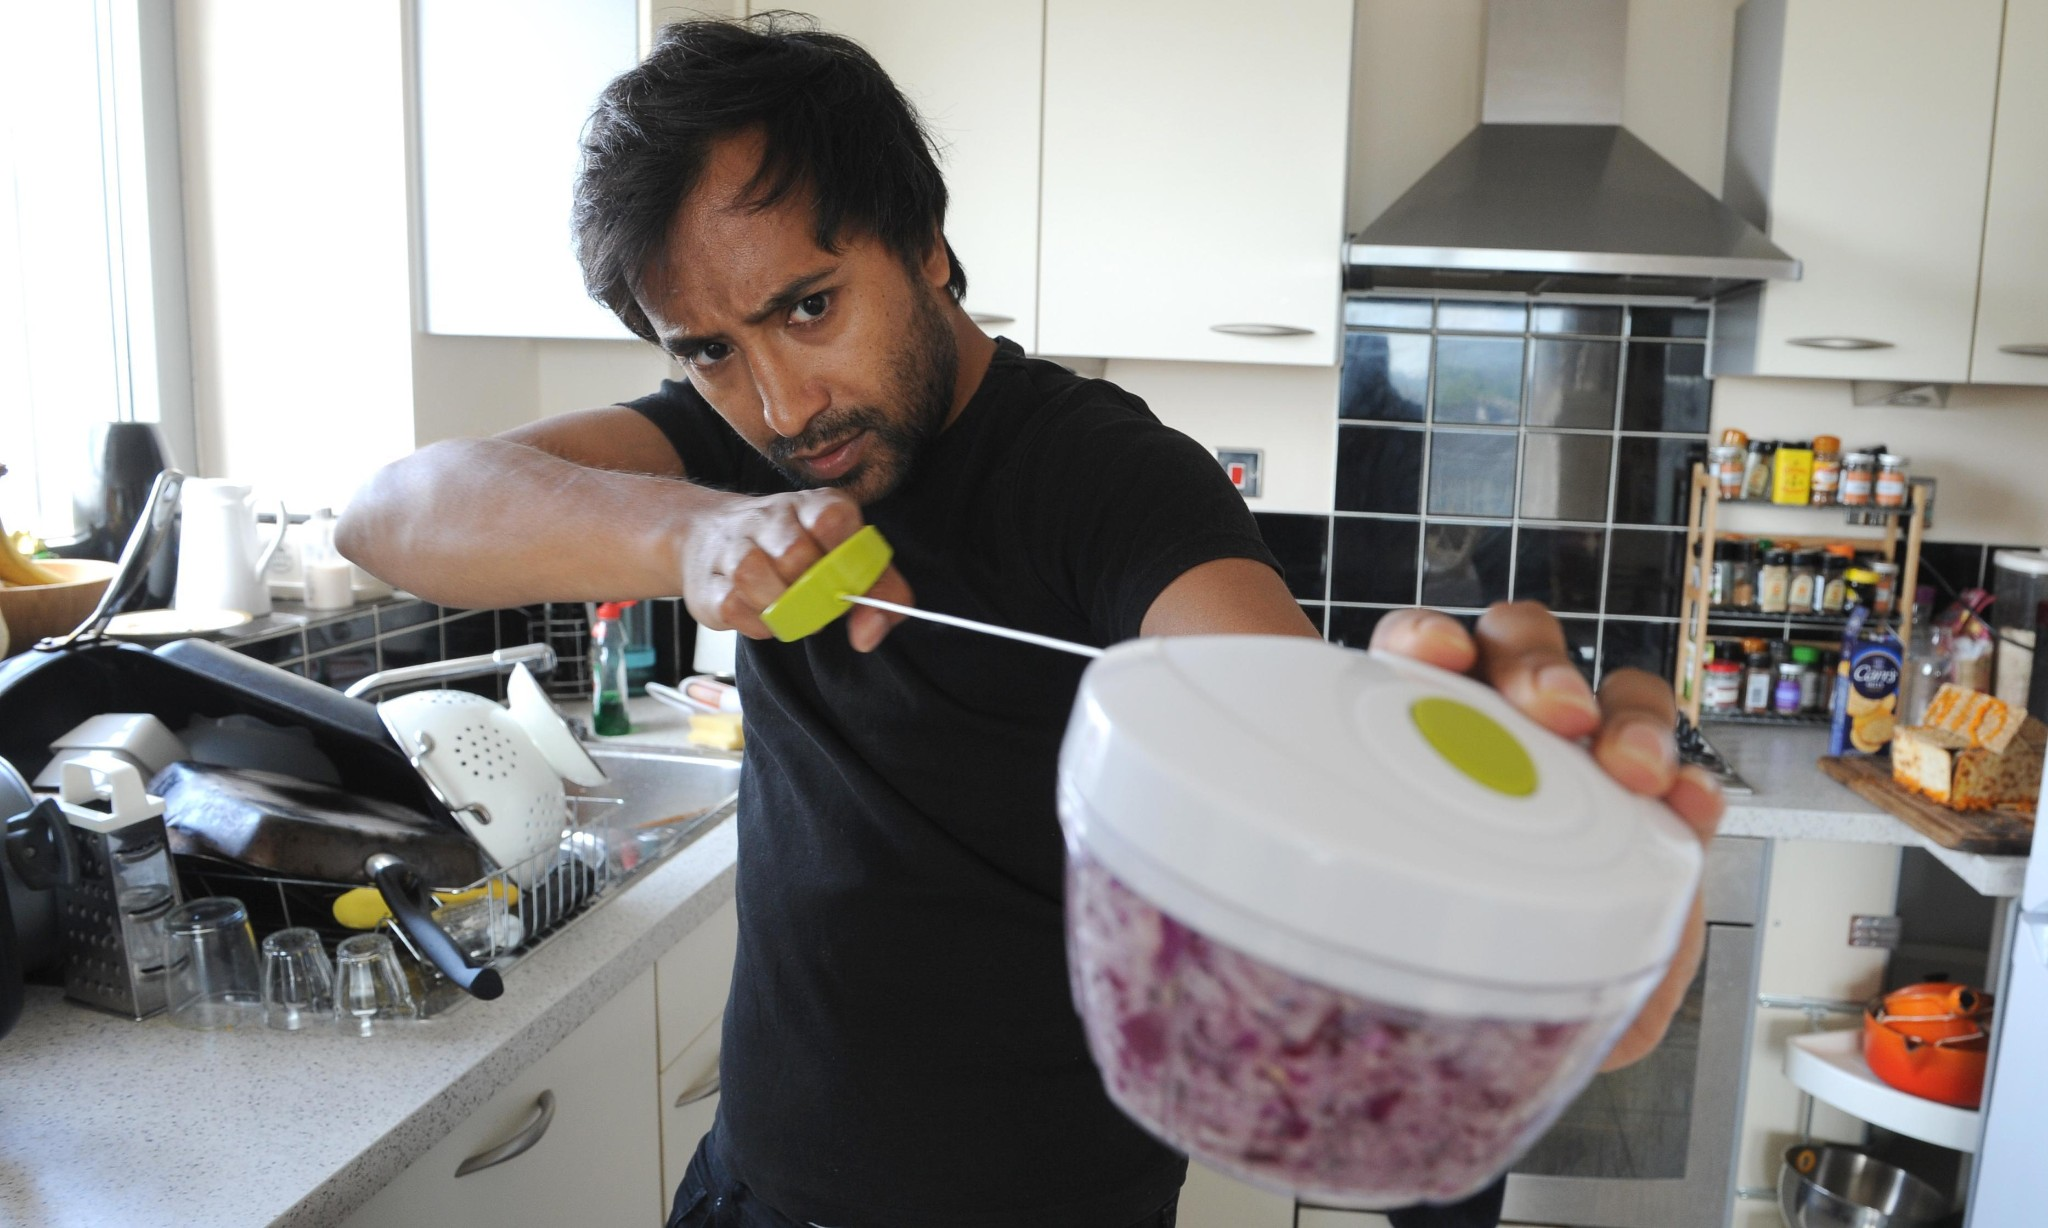 Kitchen gadgets review: mini chopper – a tool to shred both prejudice and vegetables